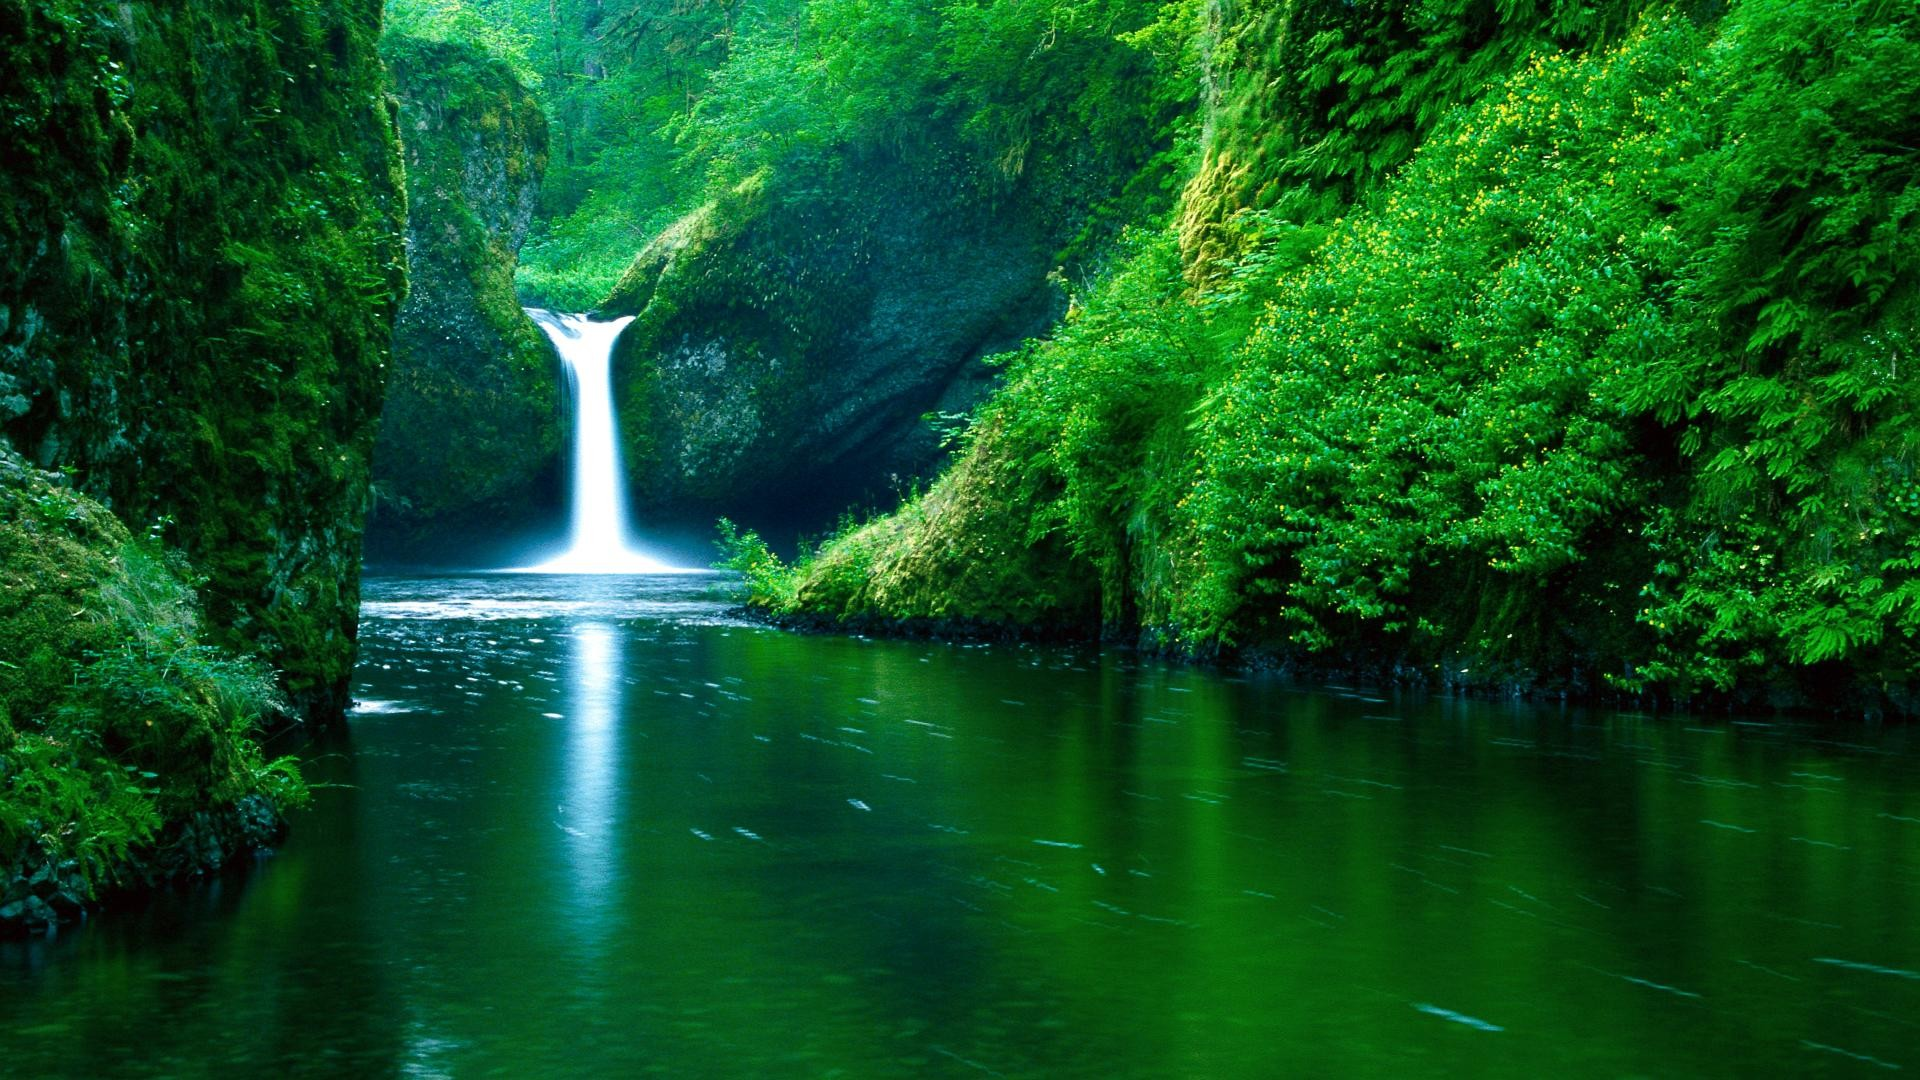 1920x1080 Waterfall in forest wallpaper 48